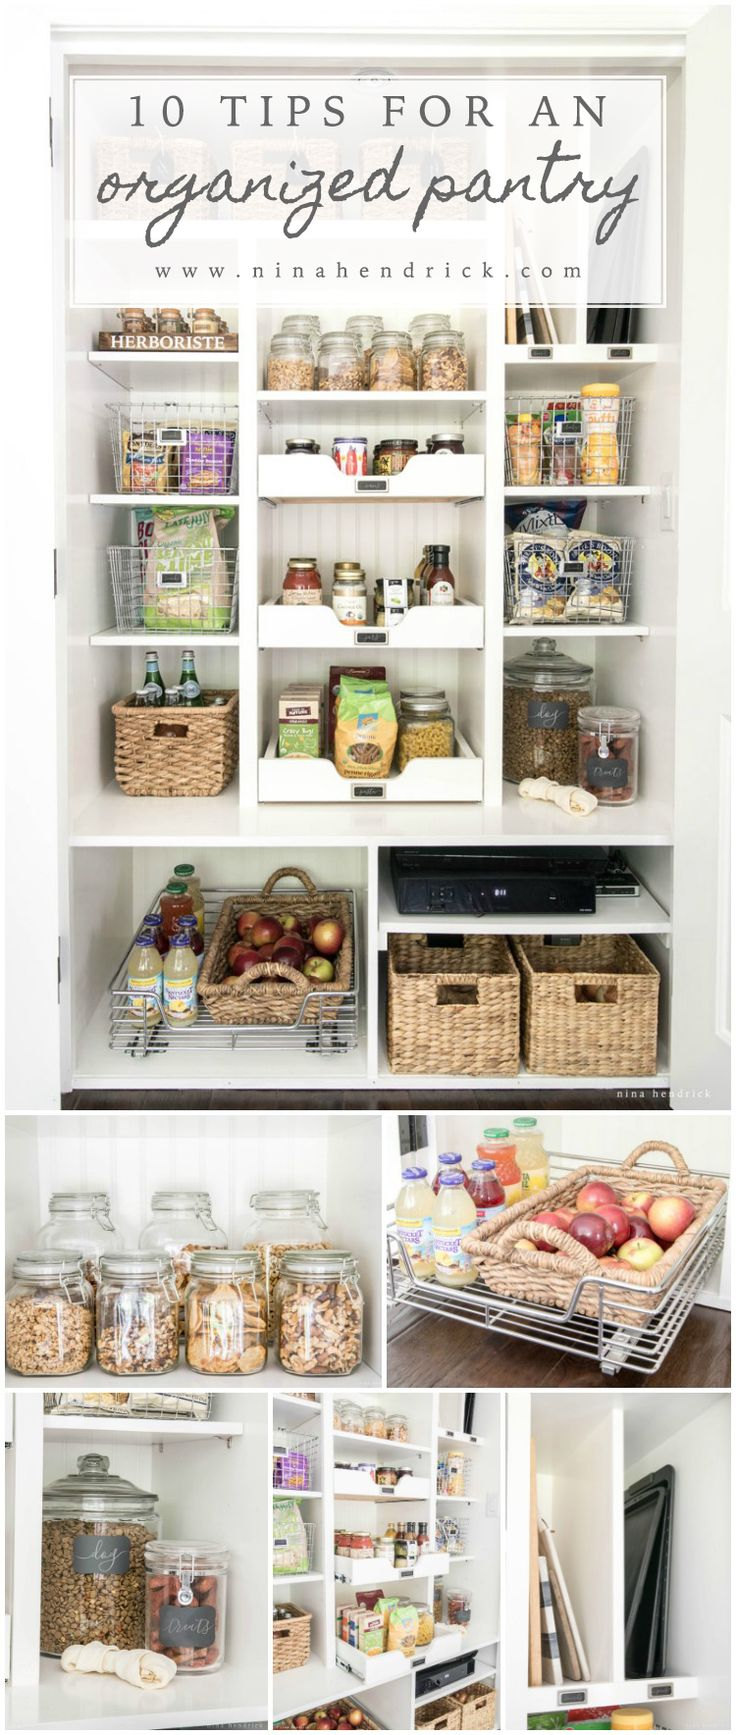 10 Tips for an Organized Pantry | Create an organized pantry with these 10 tips…